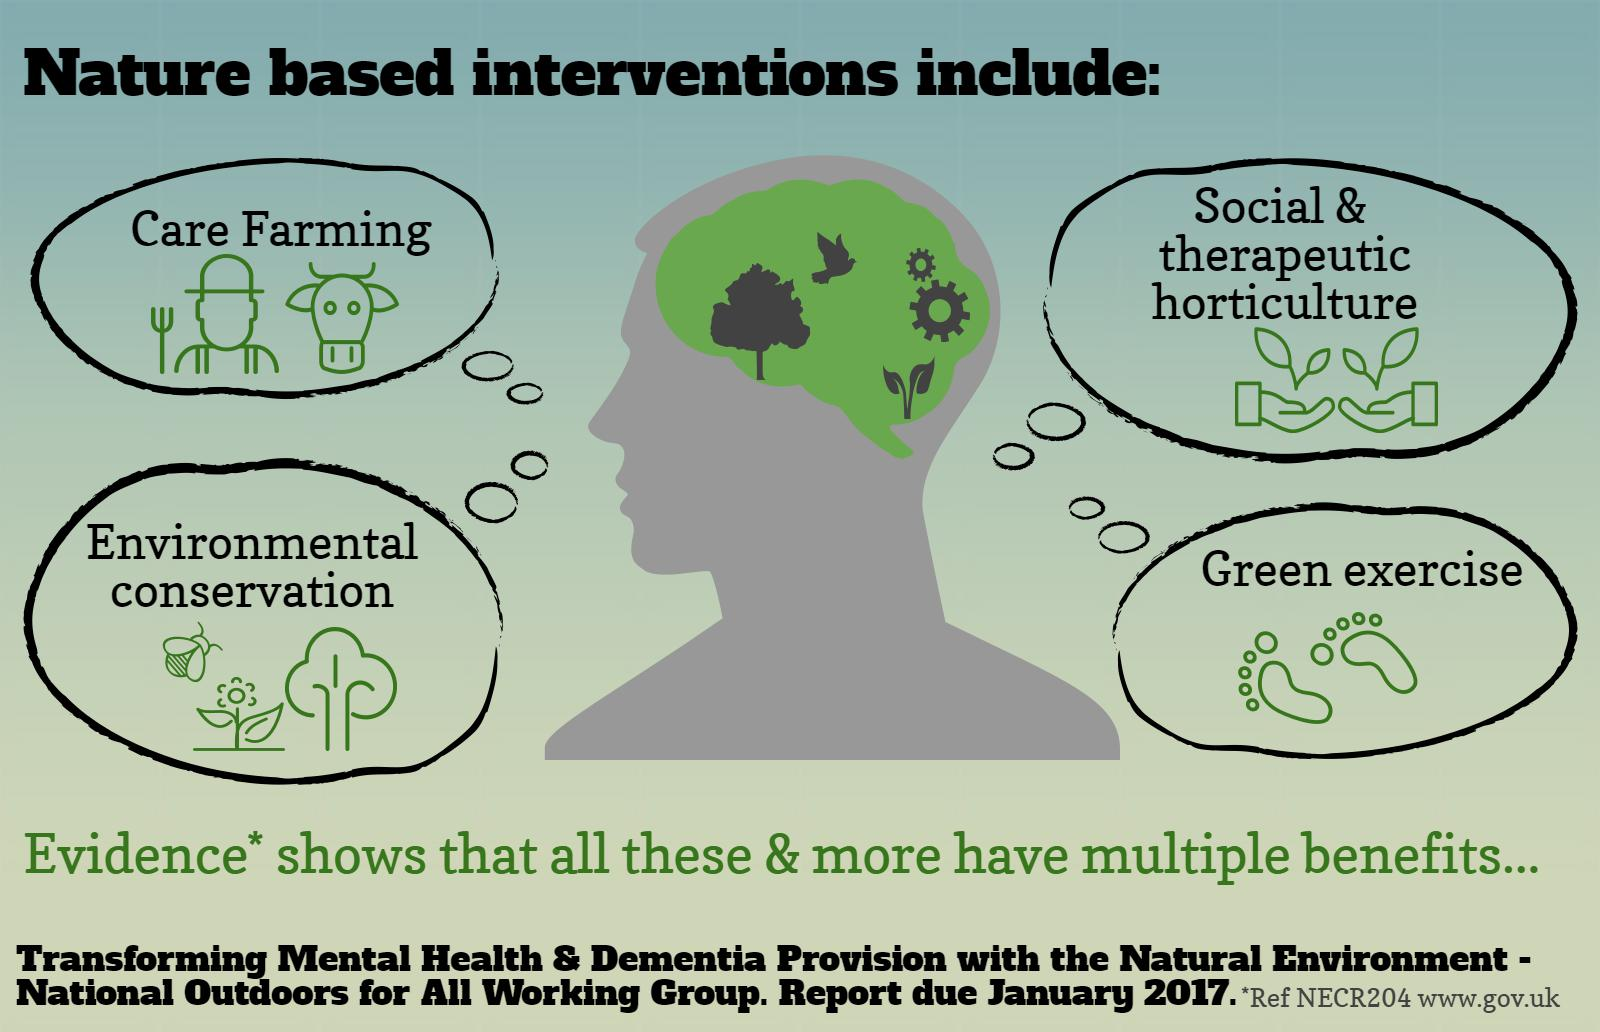 Nature based interventions can include...